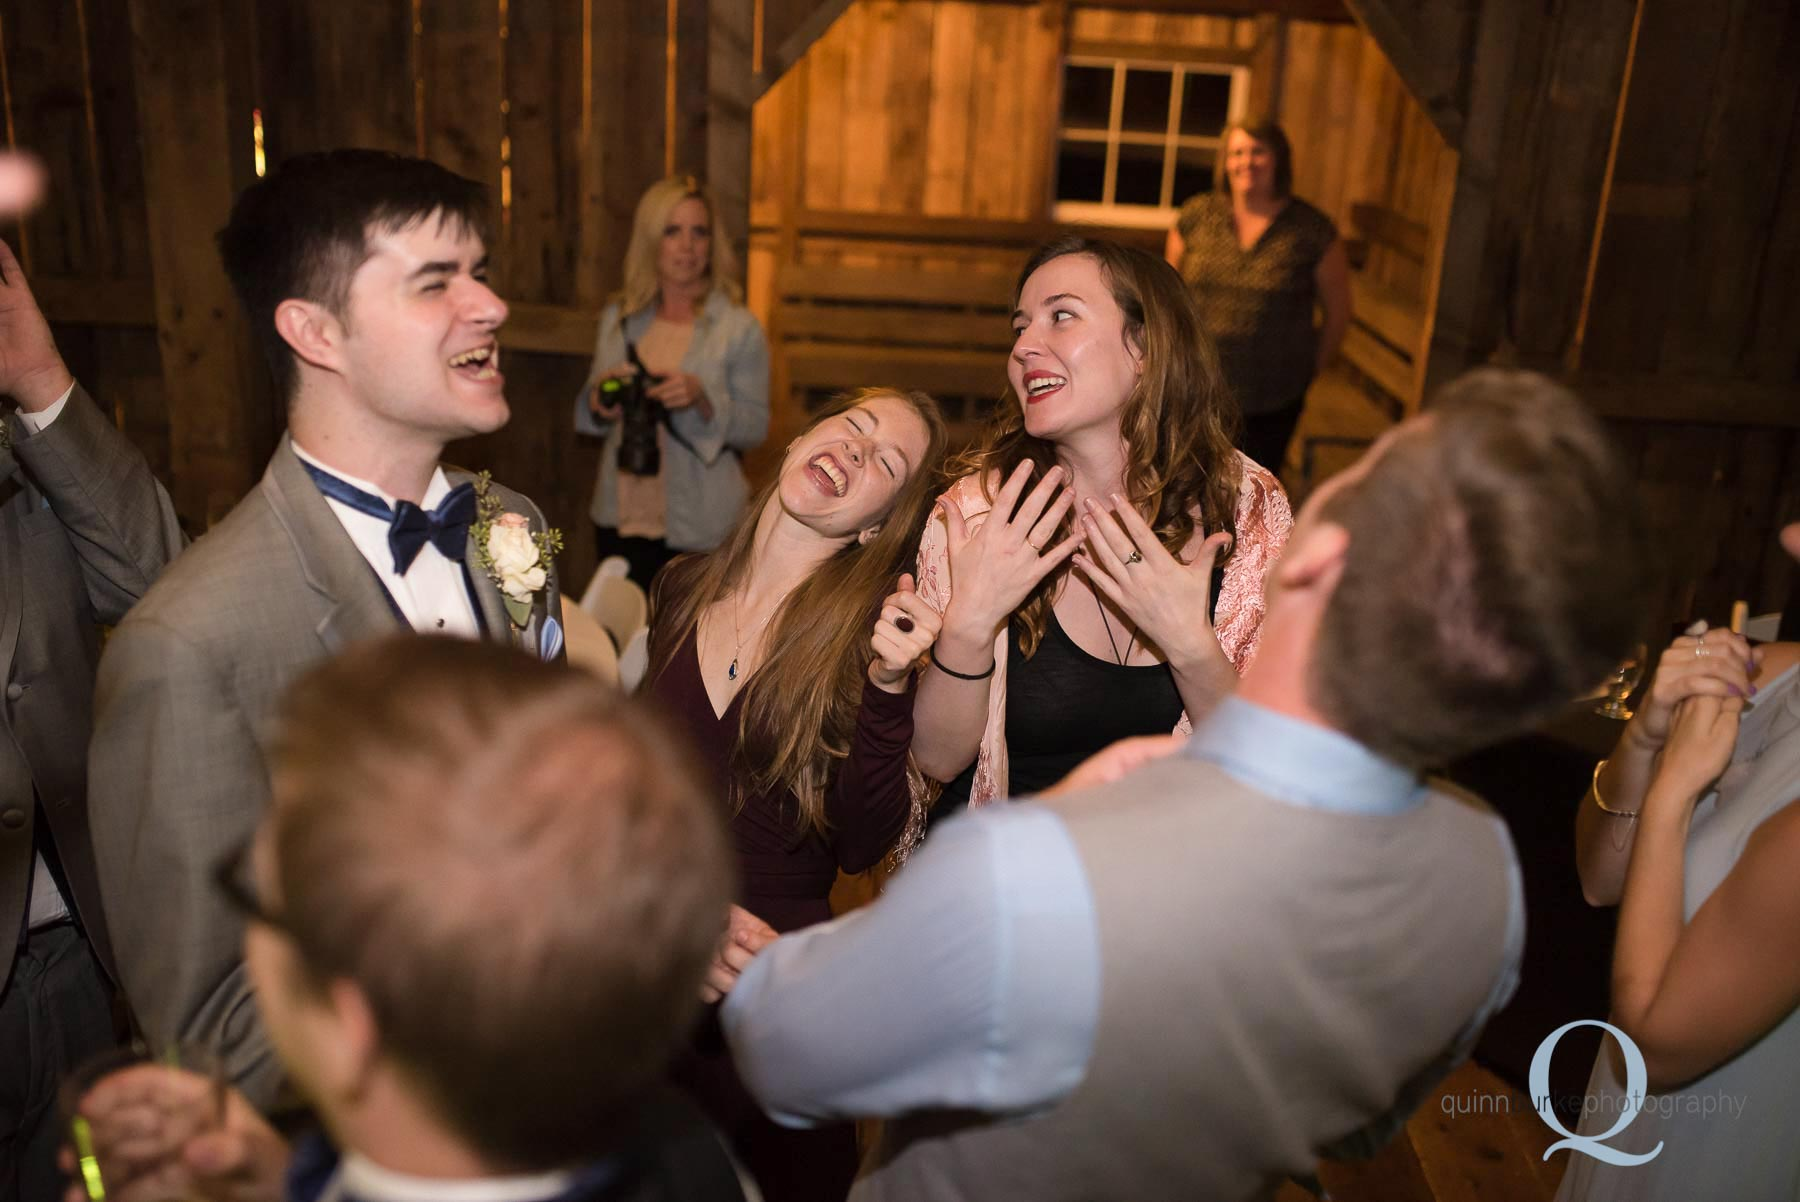 dancing in barn at Perryhill Farm wedding